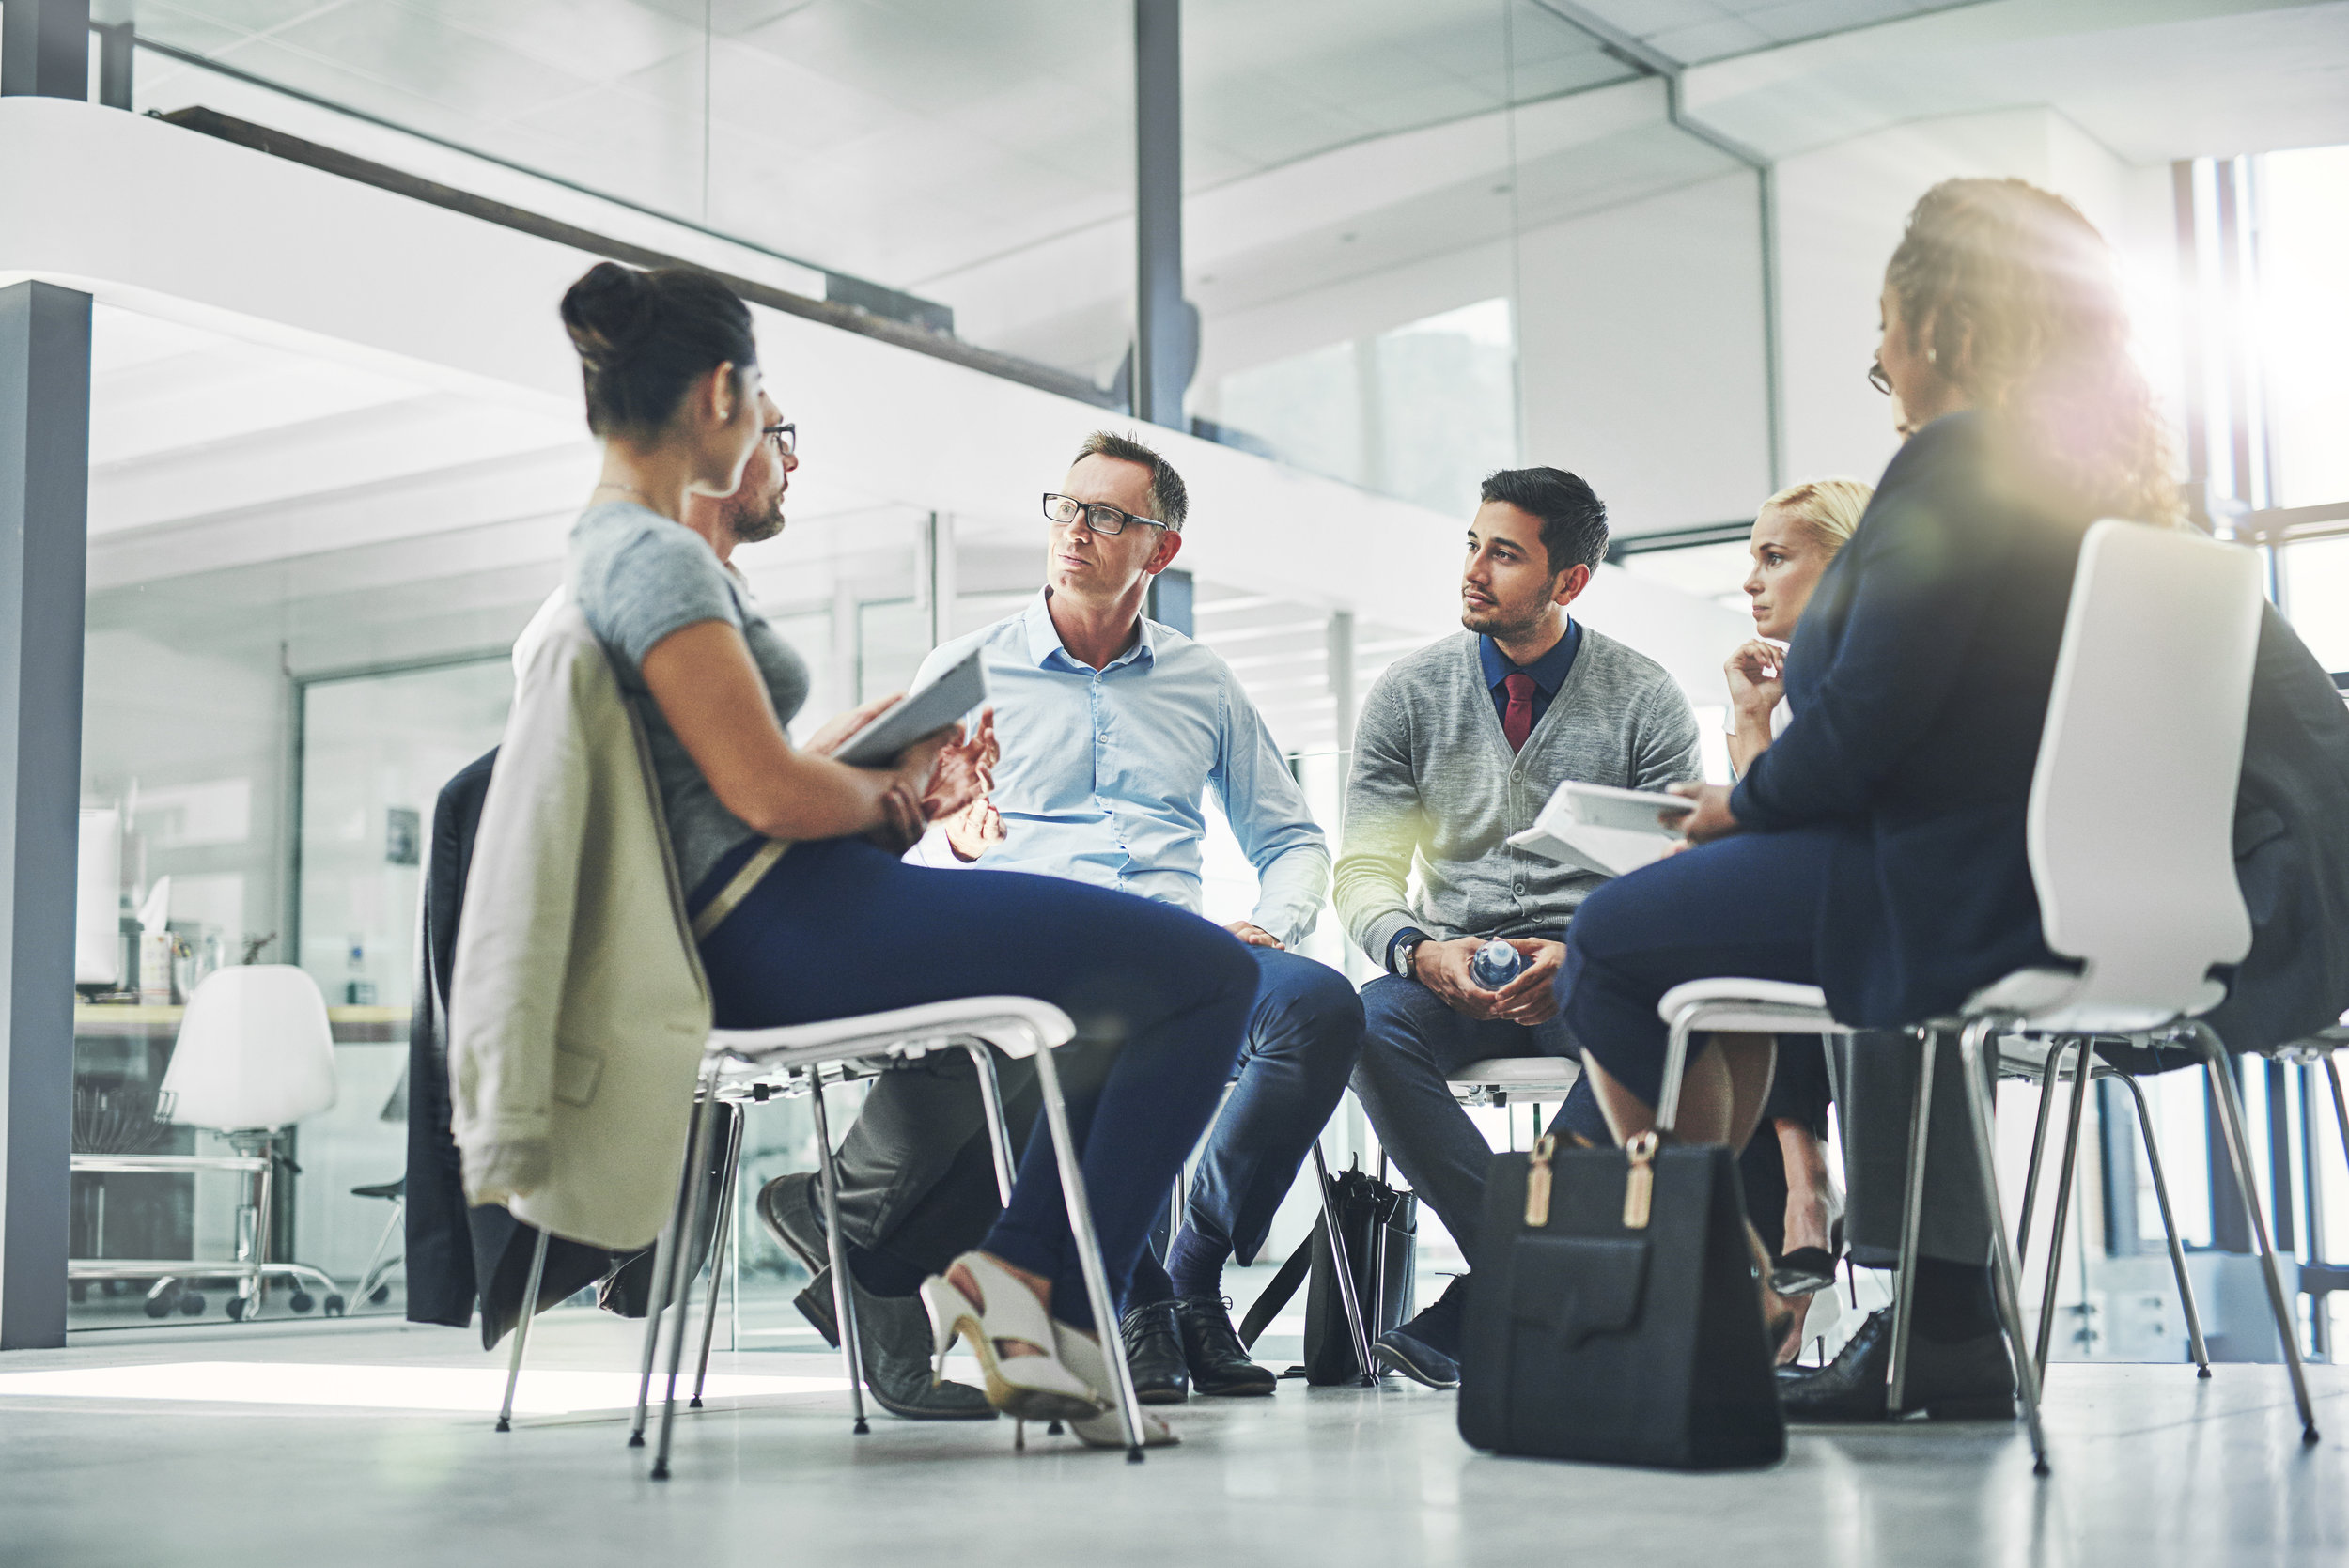 RELATIONAL COMMUNICATION FOR EMPLOYEES: INCREASE PERSONAL EFFECTIVENESS AND RESULTS - Learn how to build your rapport with managers, colleagues and customers and be more productive and fulfilled in your work.